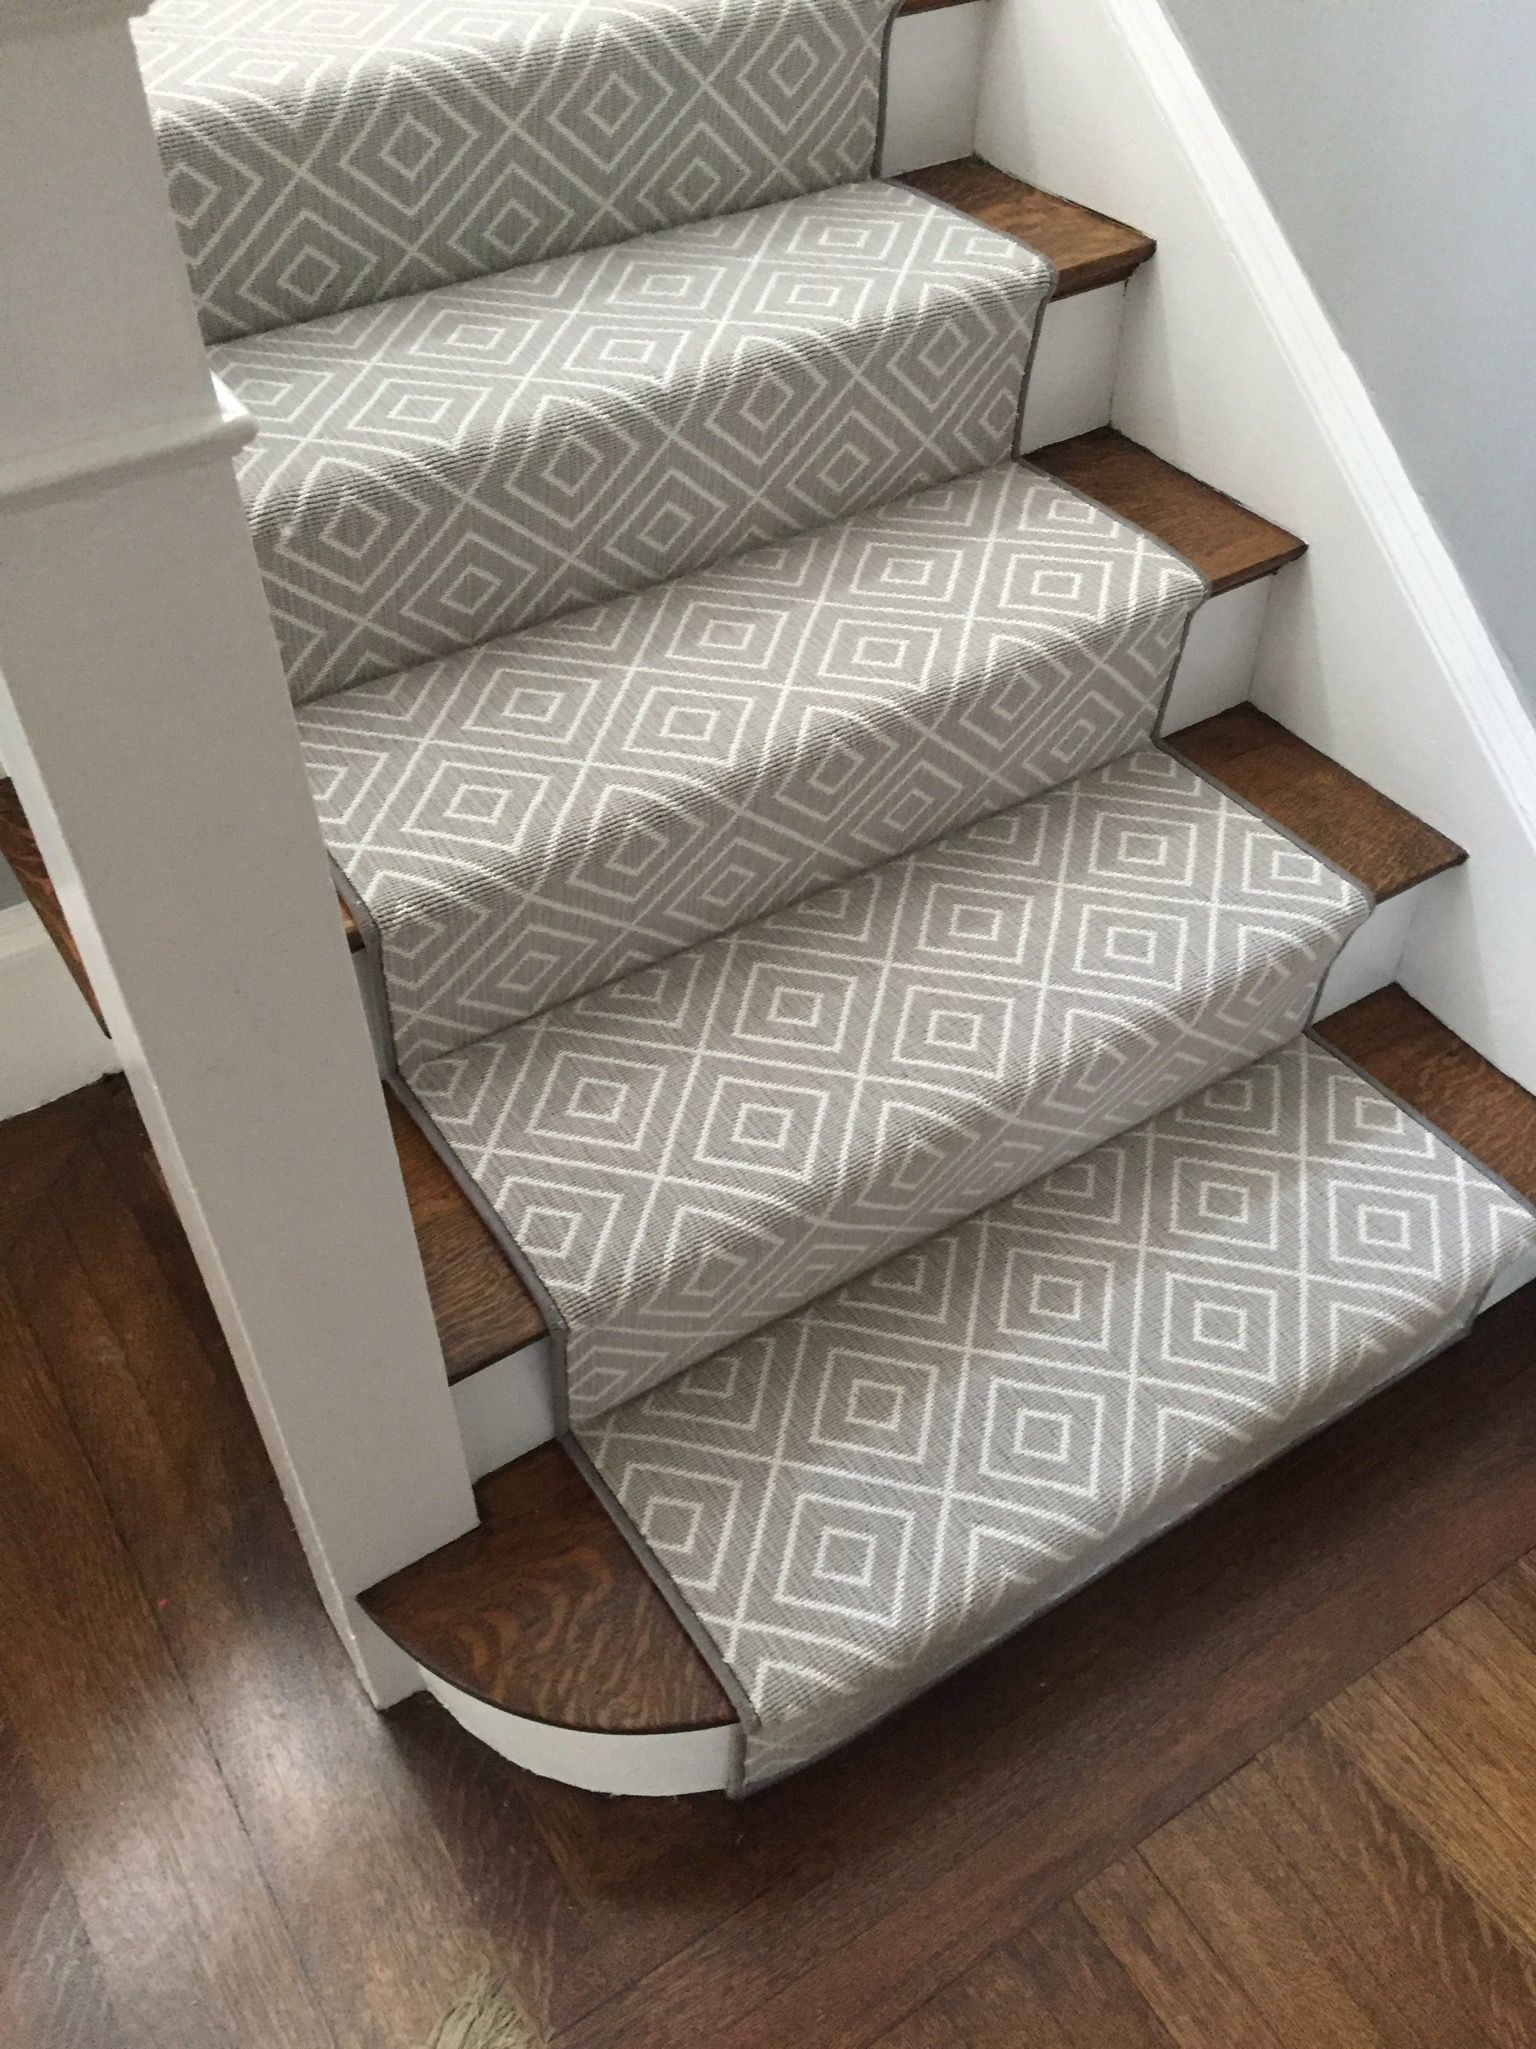 Stair Carpet Runners   Ideas for the House   Pinterest   Stair     Stair Carpet Runners   The Carpet Workroom